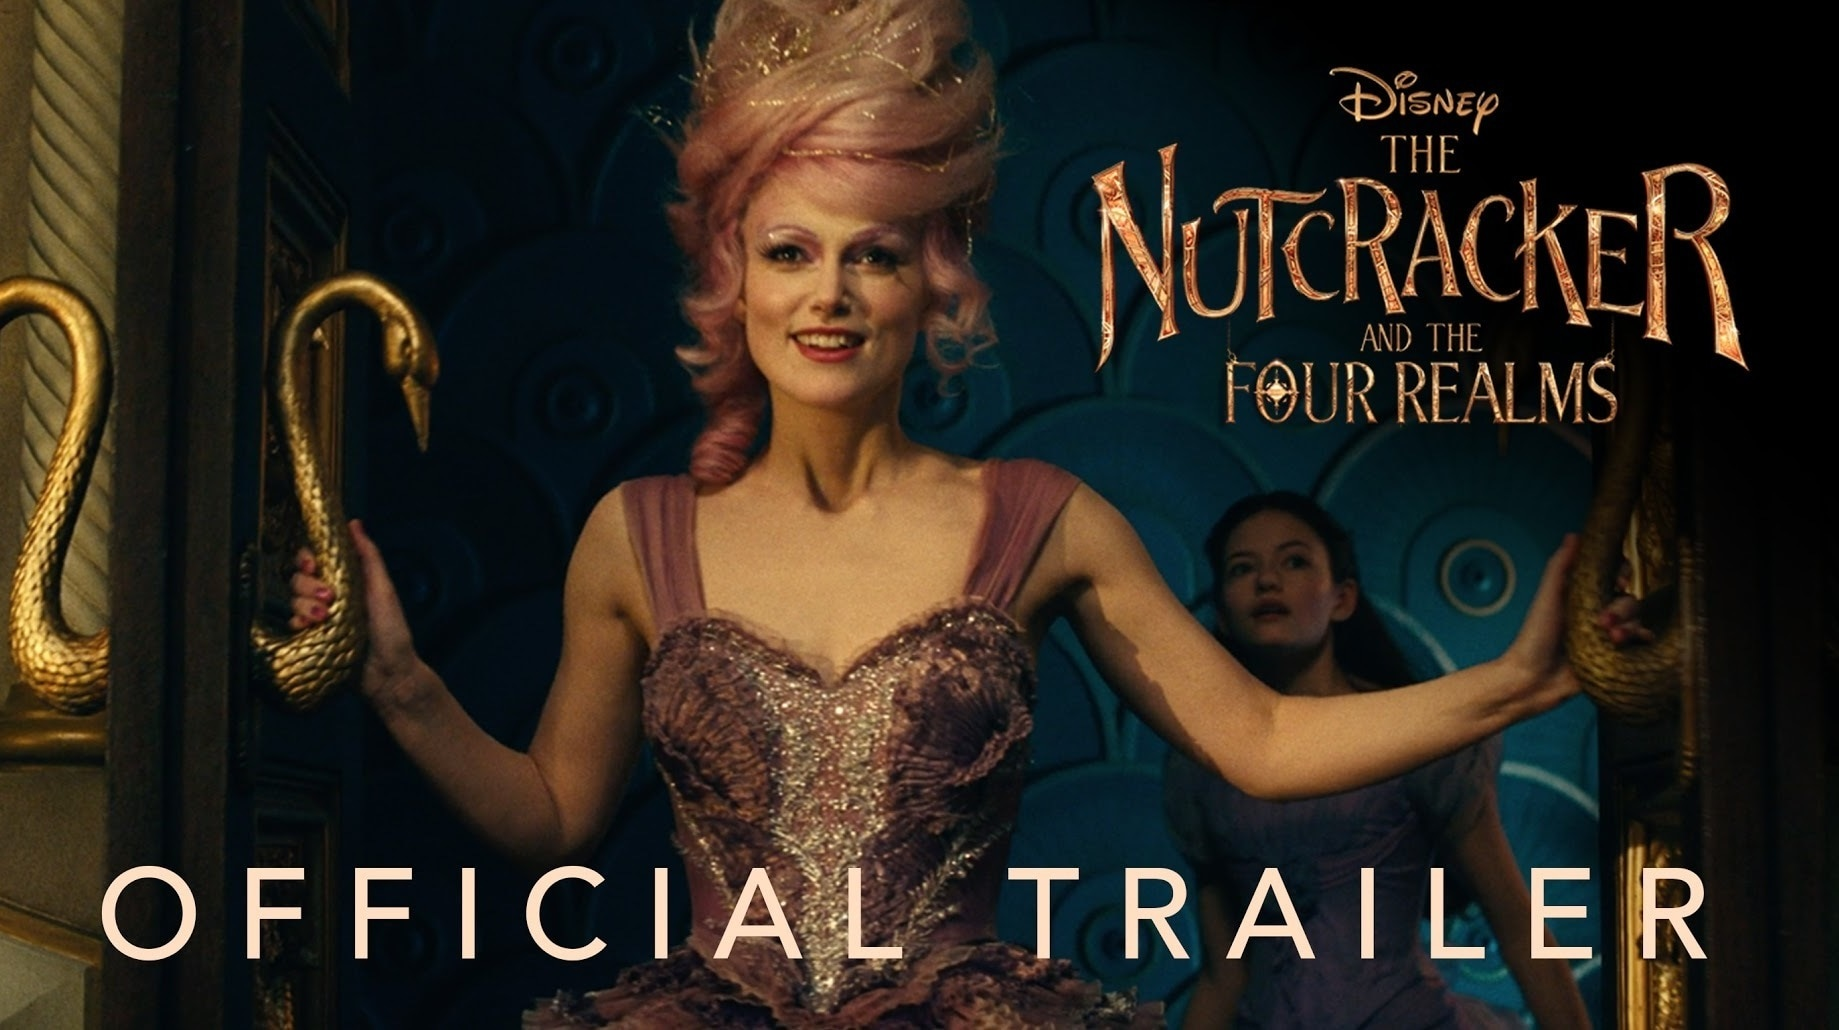 Disney's The Nutcracker and The Four Realms - Teaser Trailer